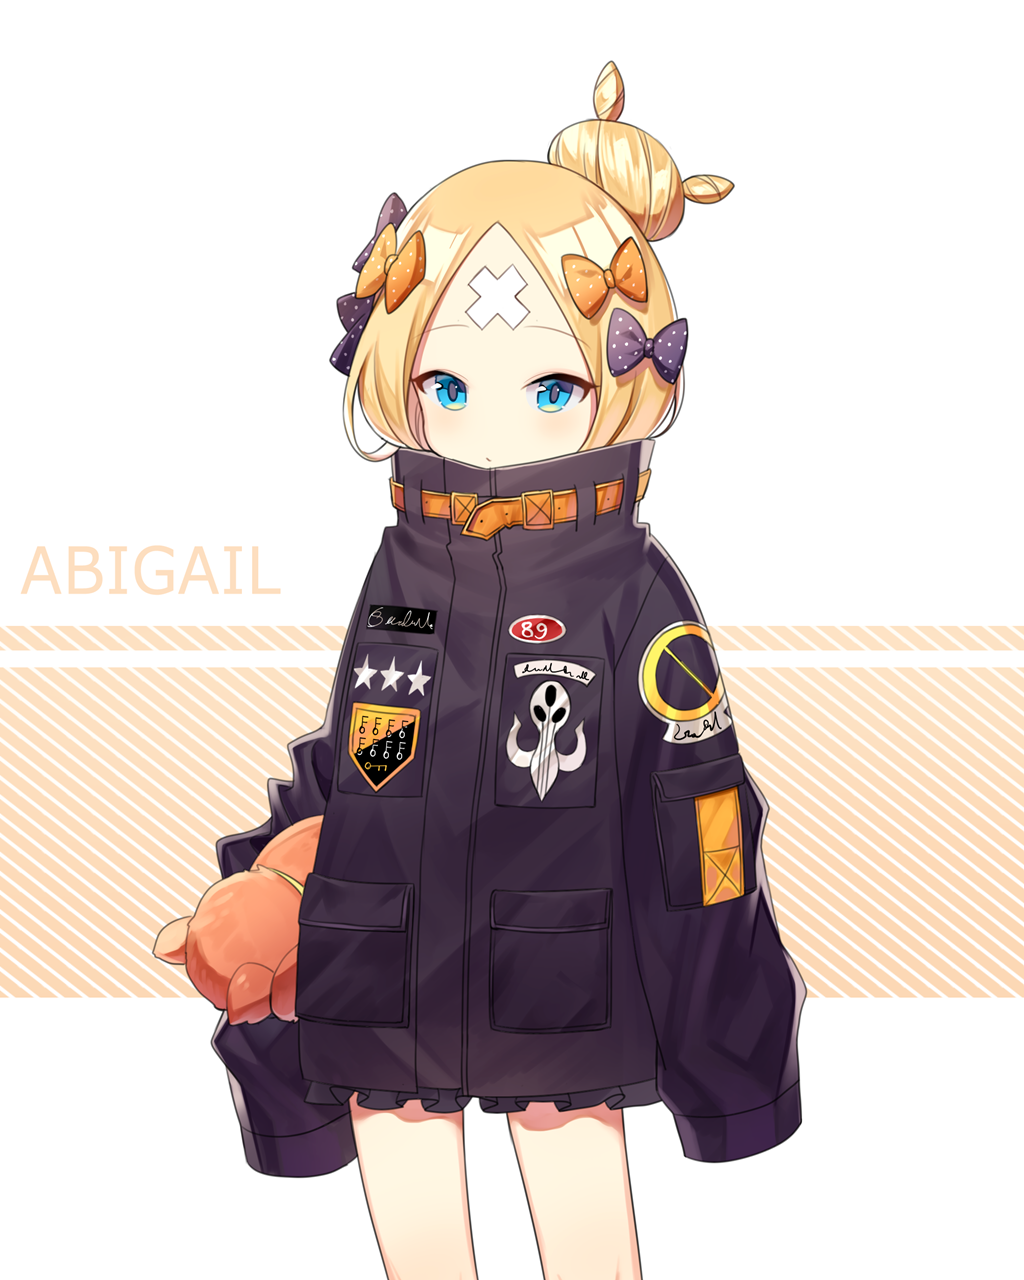 abigail_williams_(fate/grand_order) bad_id bad_pixiv_id bangs black_bow black_jacket blonde_hair blue_eyes bow character_name commentary_request fate/grand_order fate_(series) hair_bow hair_bun heroic_spirit_traveling_outfit highres jacket key long_hair long_sleeves object_hug orange_bow parted_bangs polka_dot polka_dot_bow sal sleeves_past_fingers sleeves_past_wrists solo star stuffed_animal stuffed_toy teddy_bear